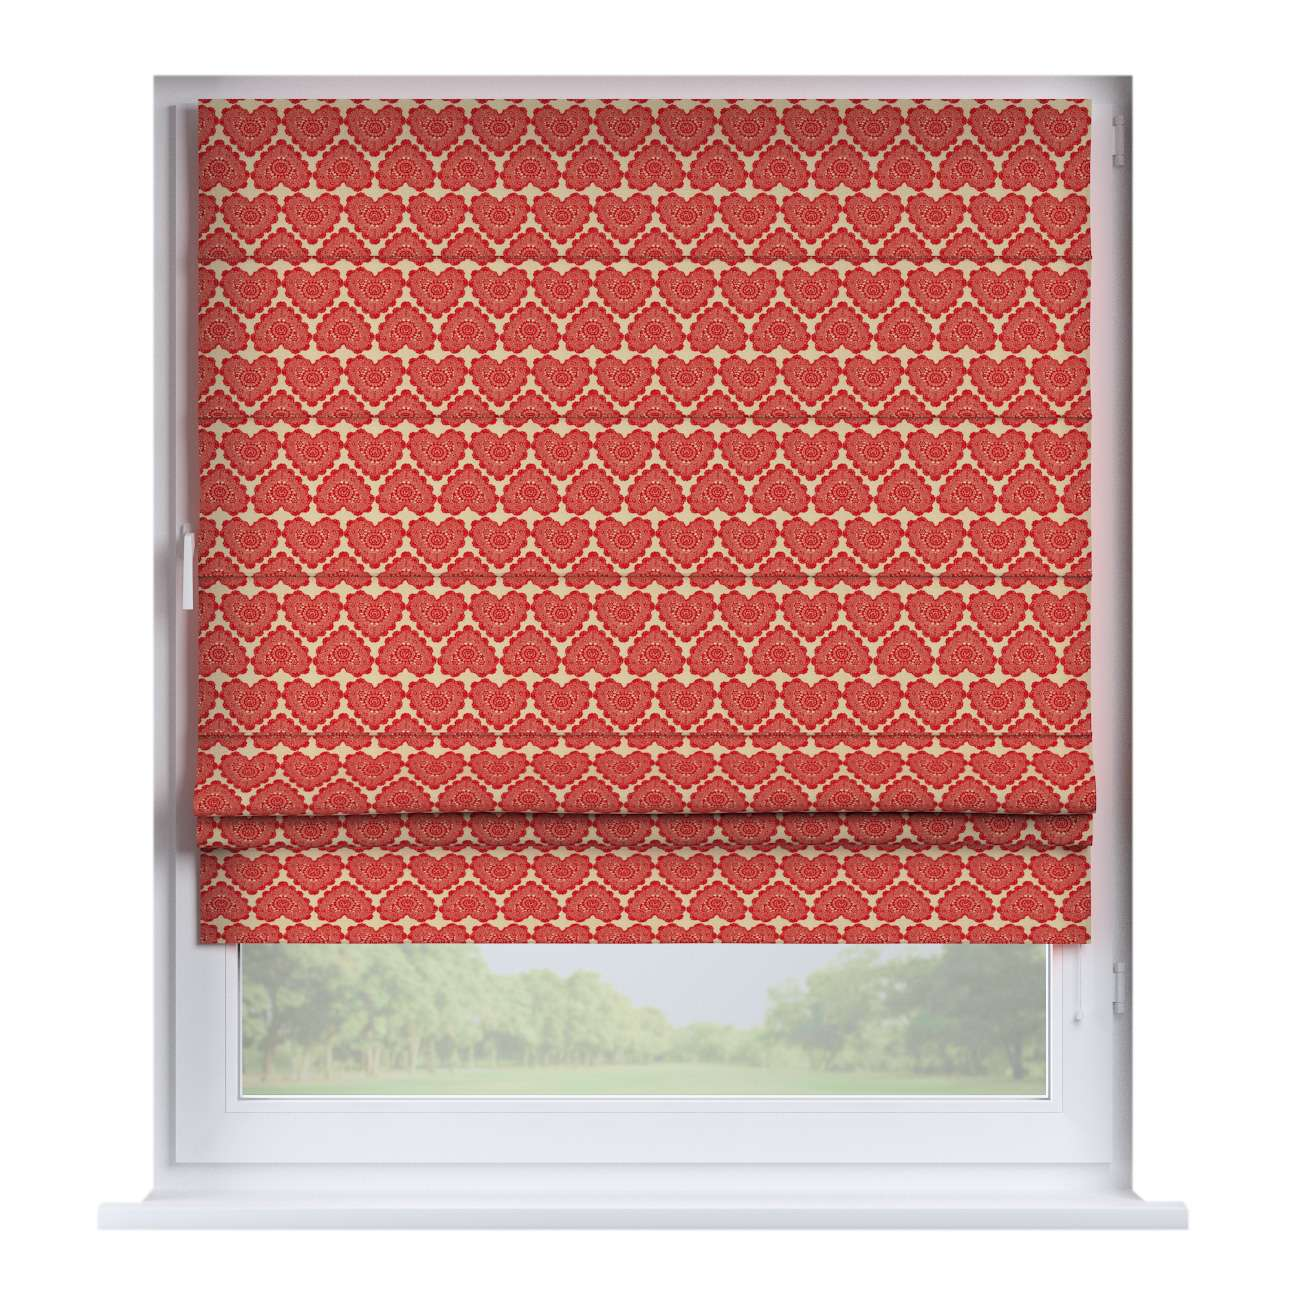 Padva roman blind  80 x 170 cm (31.5 x 67 inch) in collection Christmas, fabric: 629-17